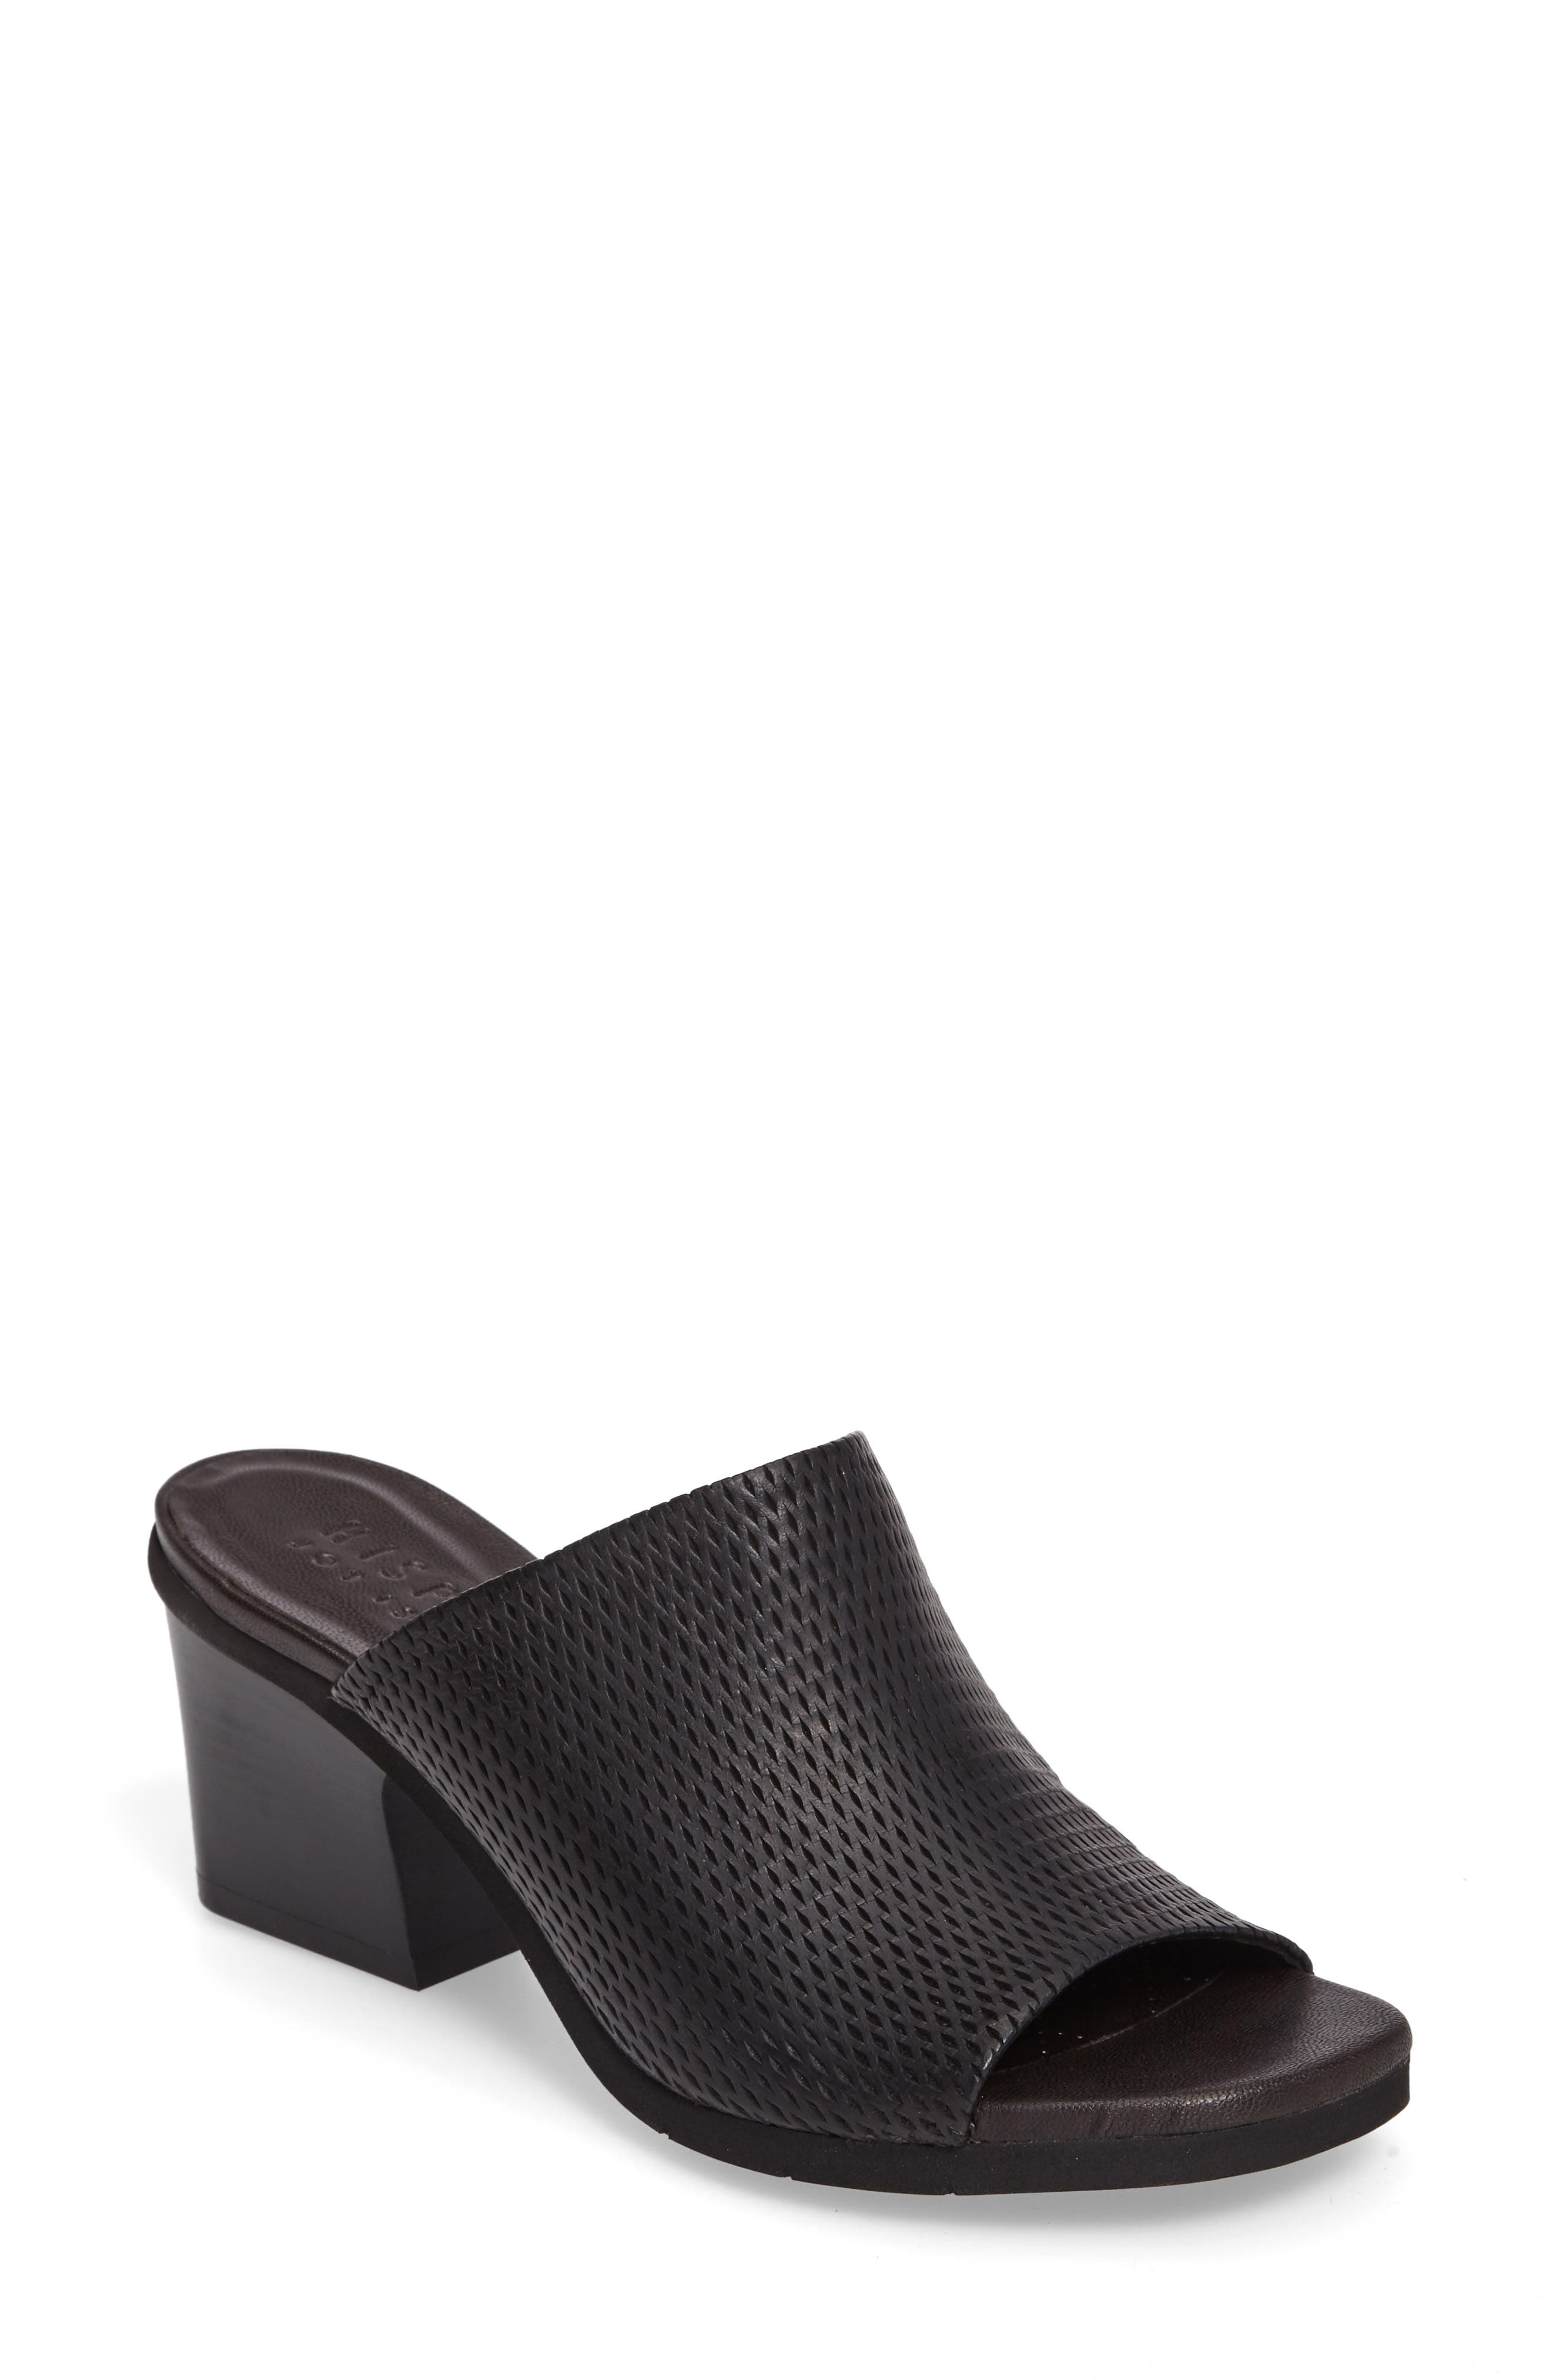 Udora Perforated Mule,                             Main thumbnail 1, color,                             001